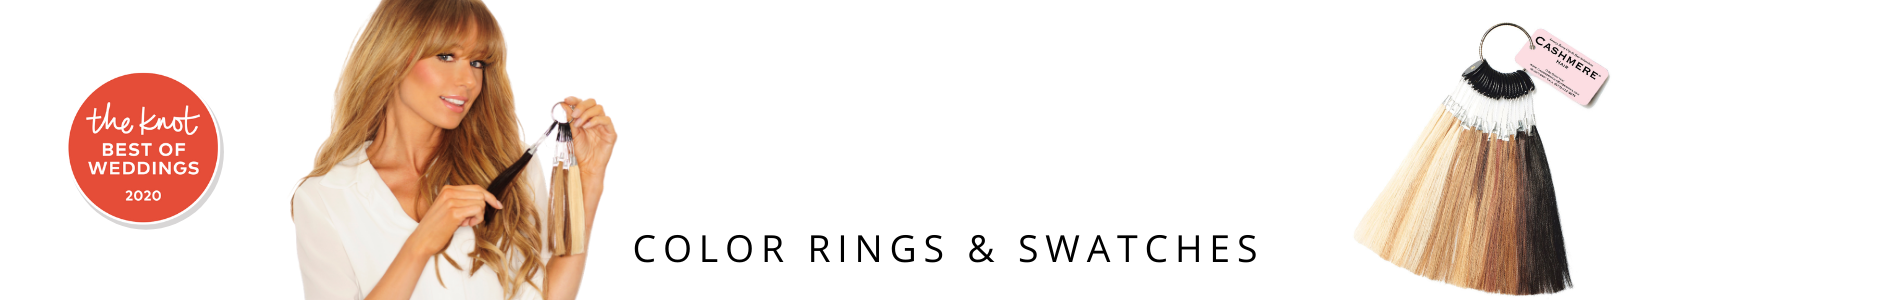 4-color-rings-and-swatches-store-banner.png